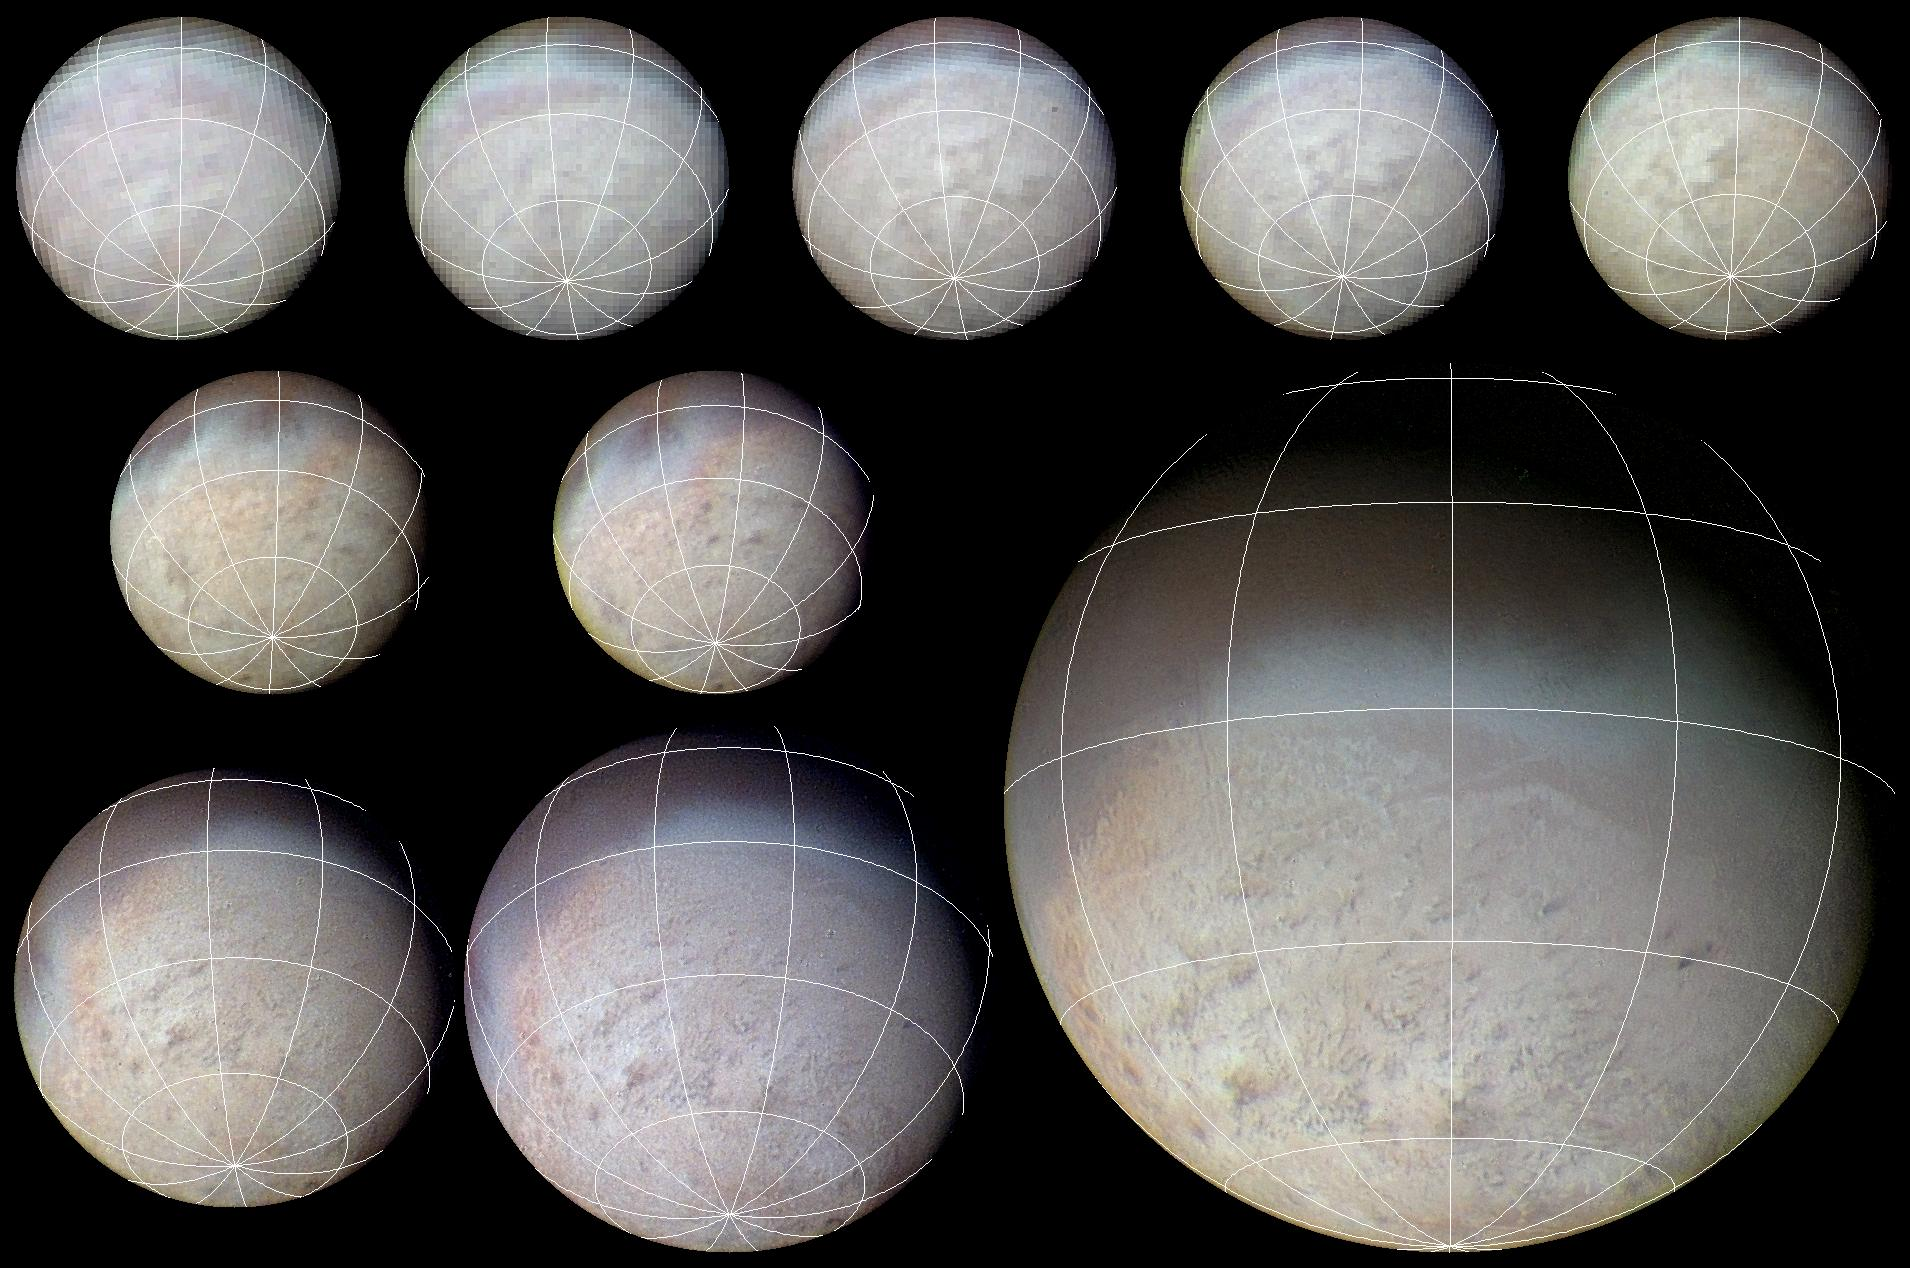 Triton Voyager 2 approach sequence with latitude-longitude grid superposed.